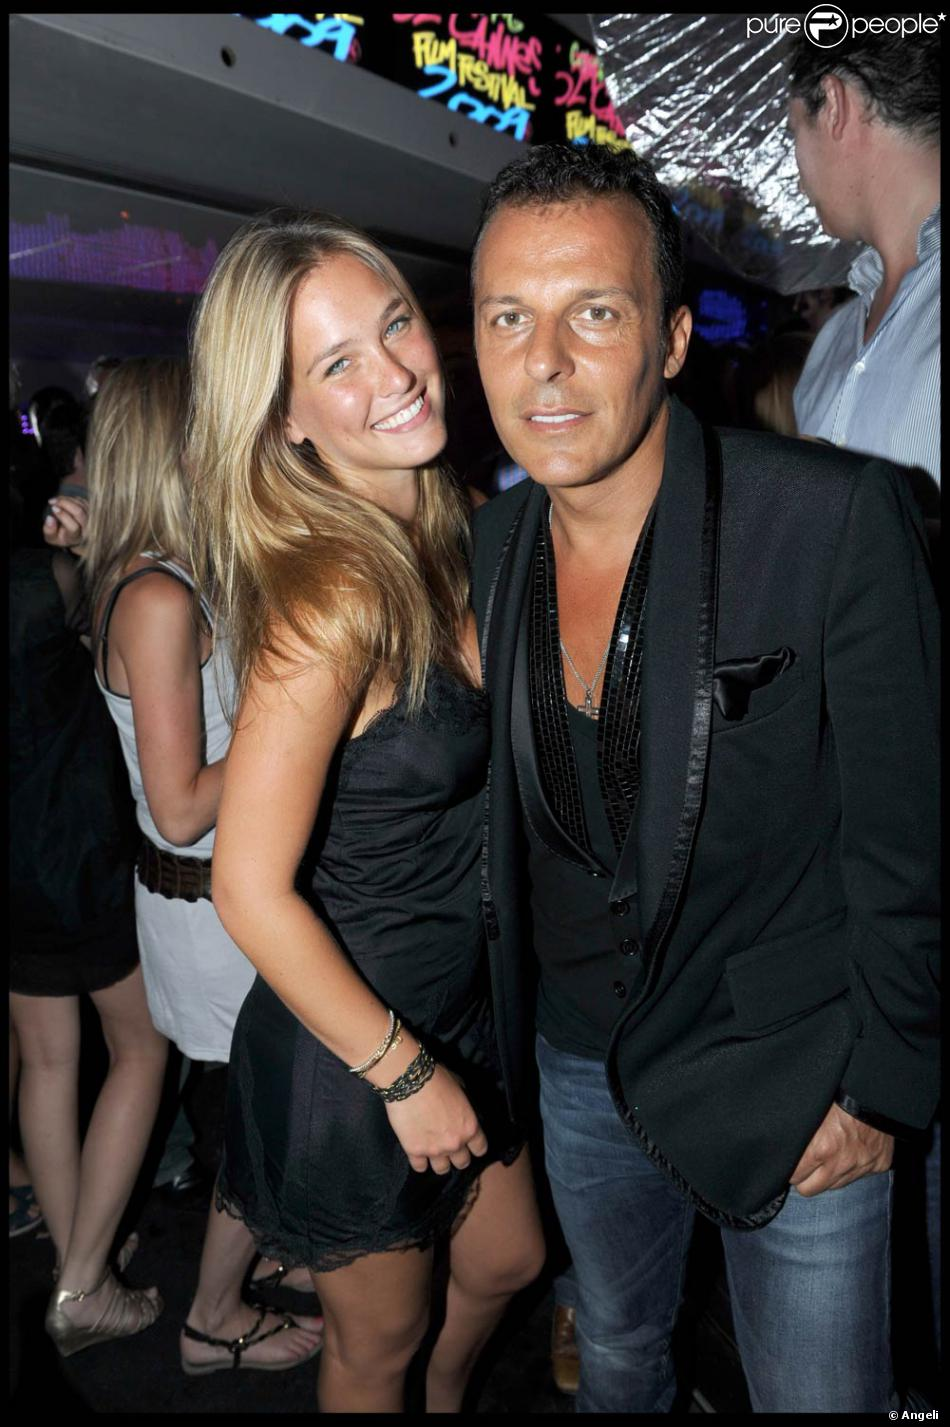 bar refaeli et jean roch s 39 clatent au vip room saint tropez le 22 juillet 2009 purepeople. Black Bedroom Furniture Sets. Home Design Ideas